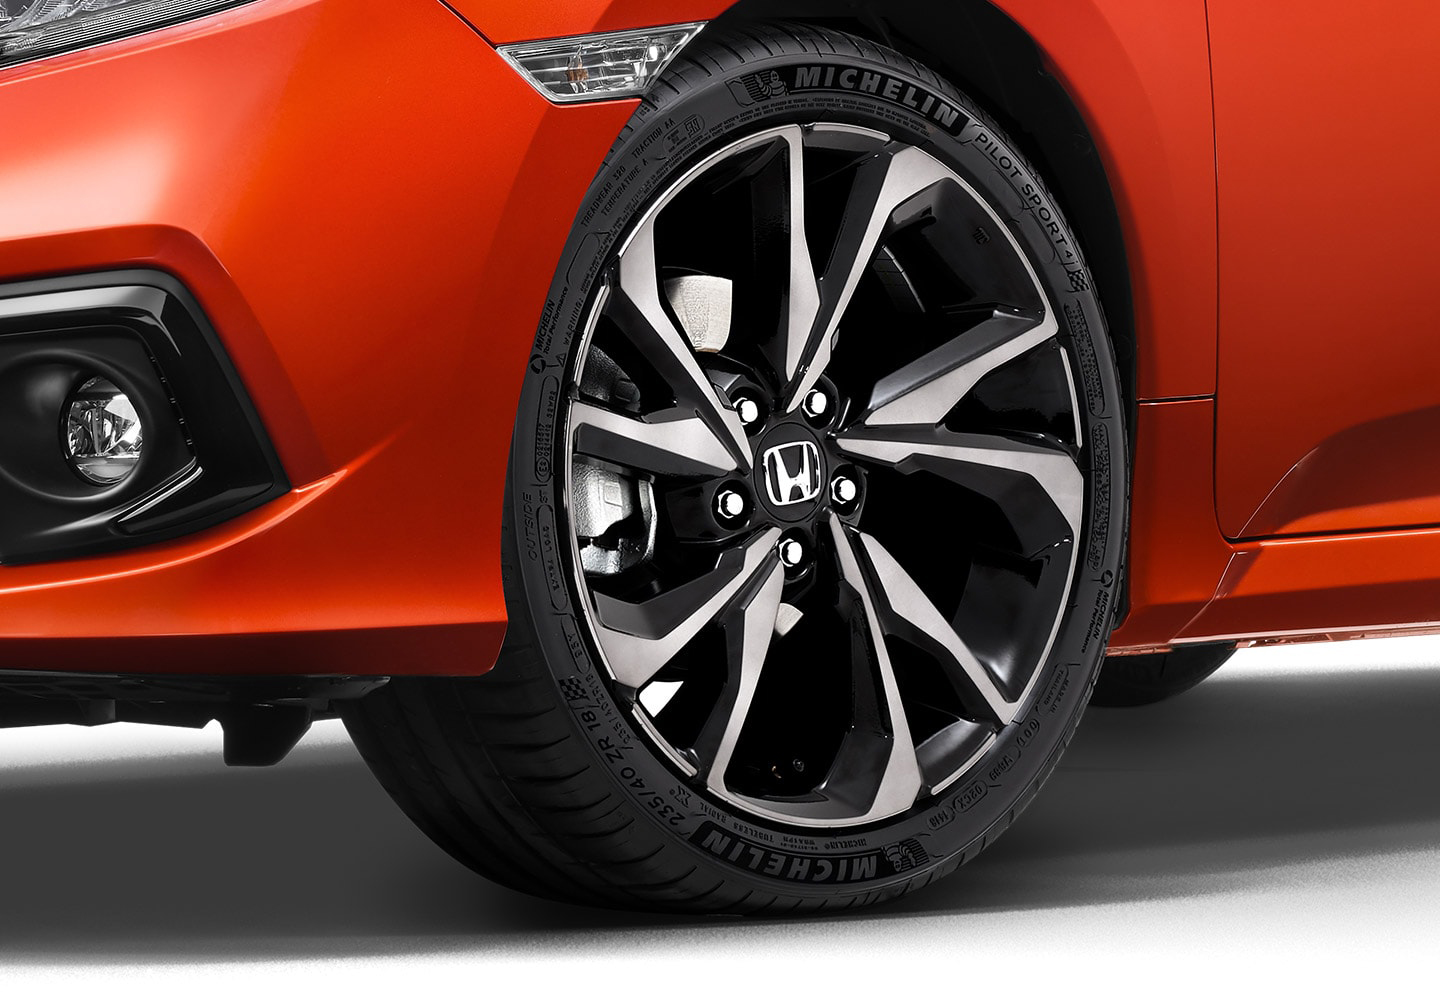 Civic Sedan Alloy Wheels